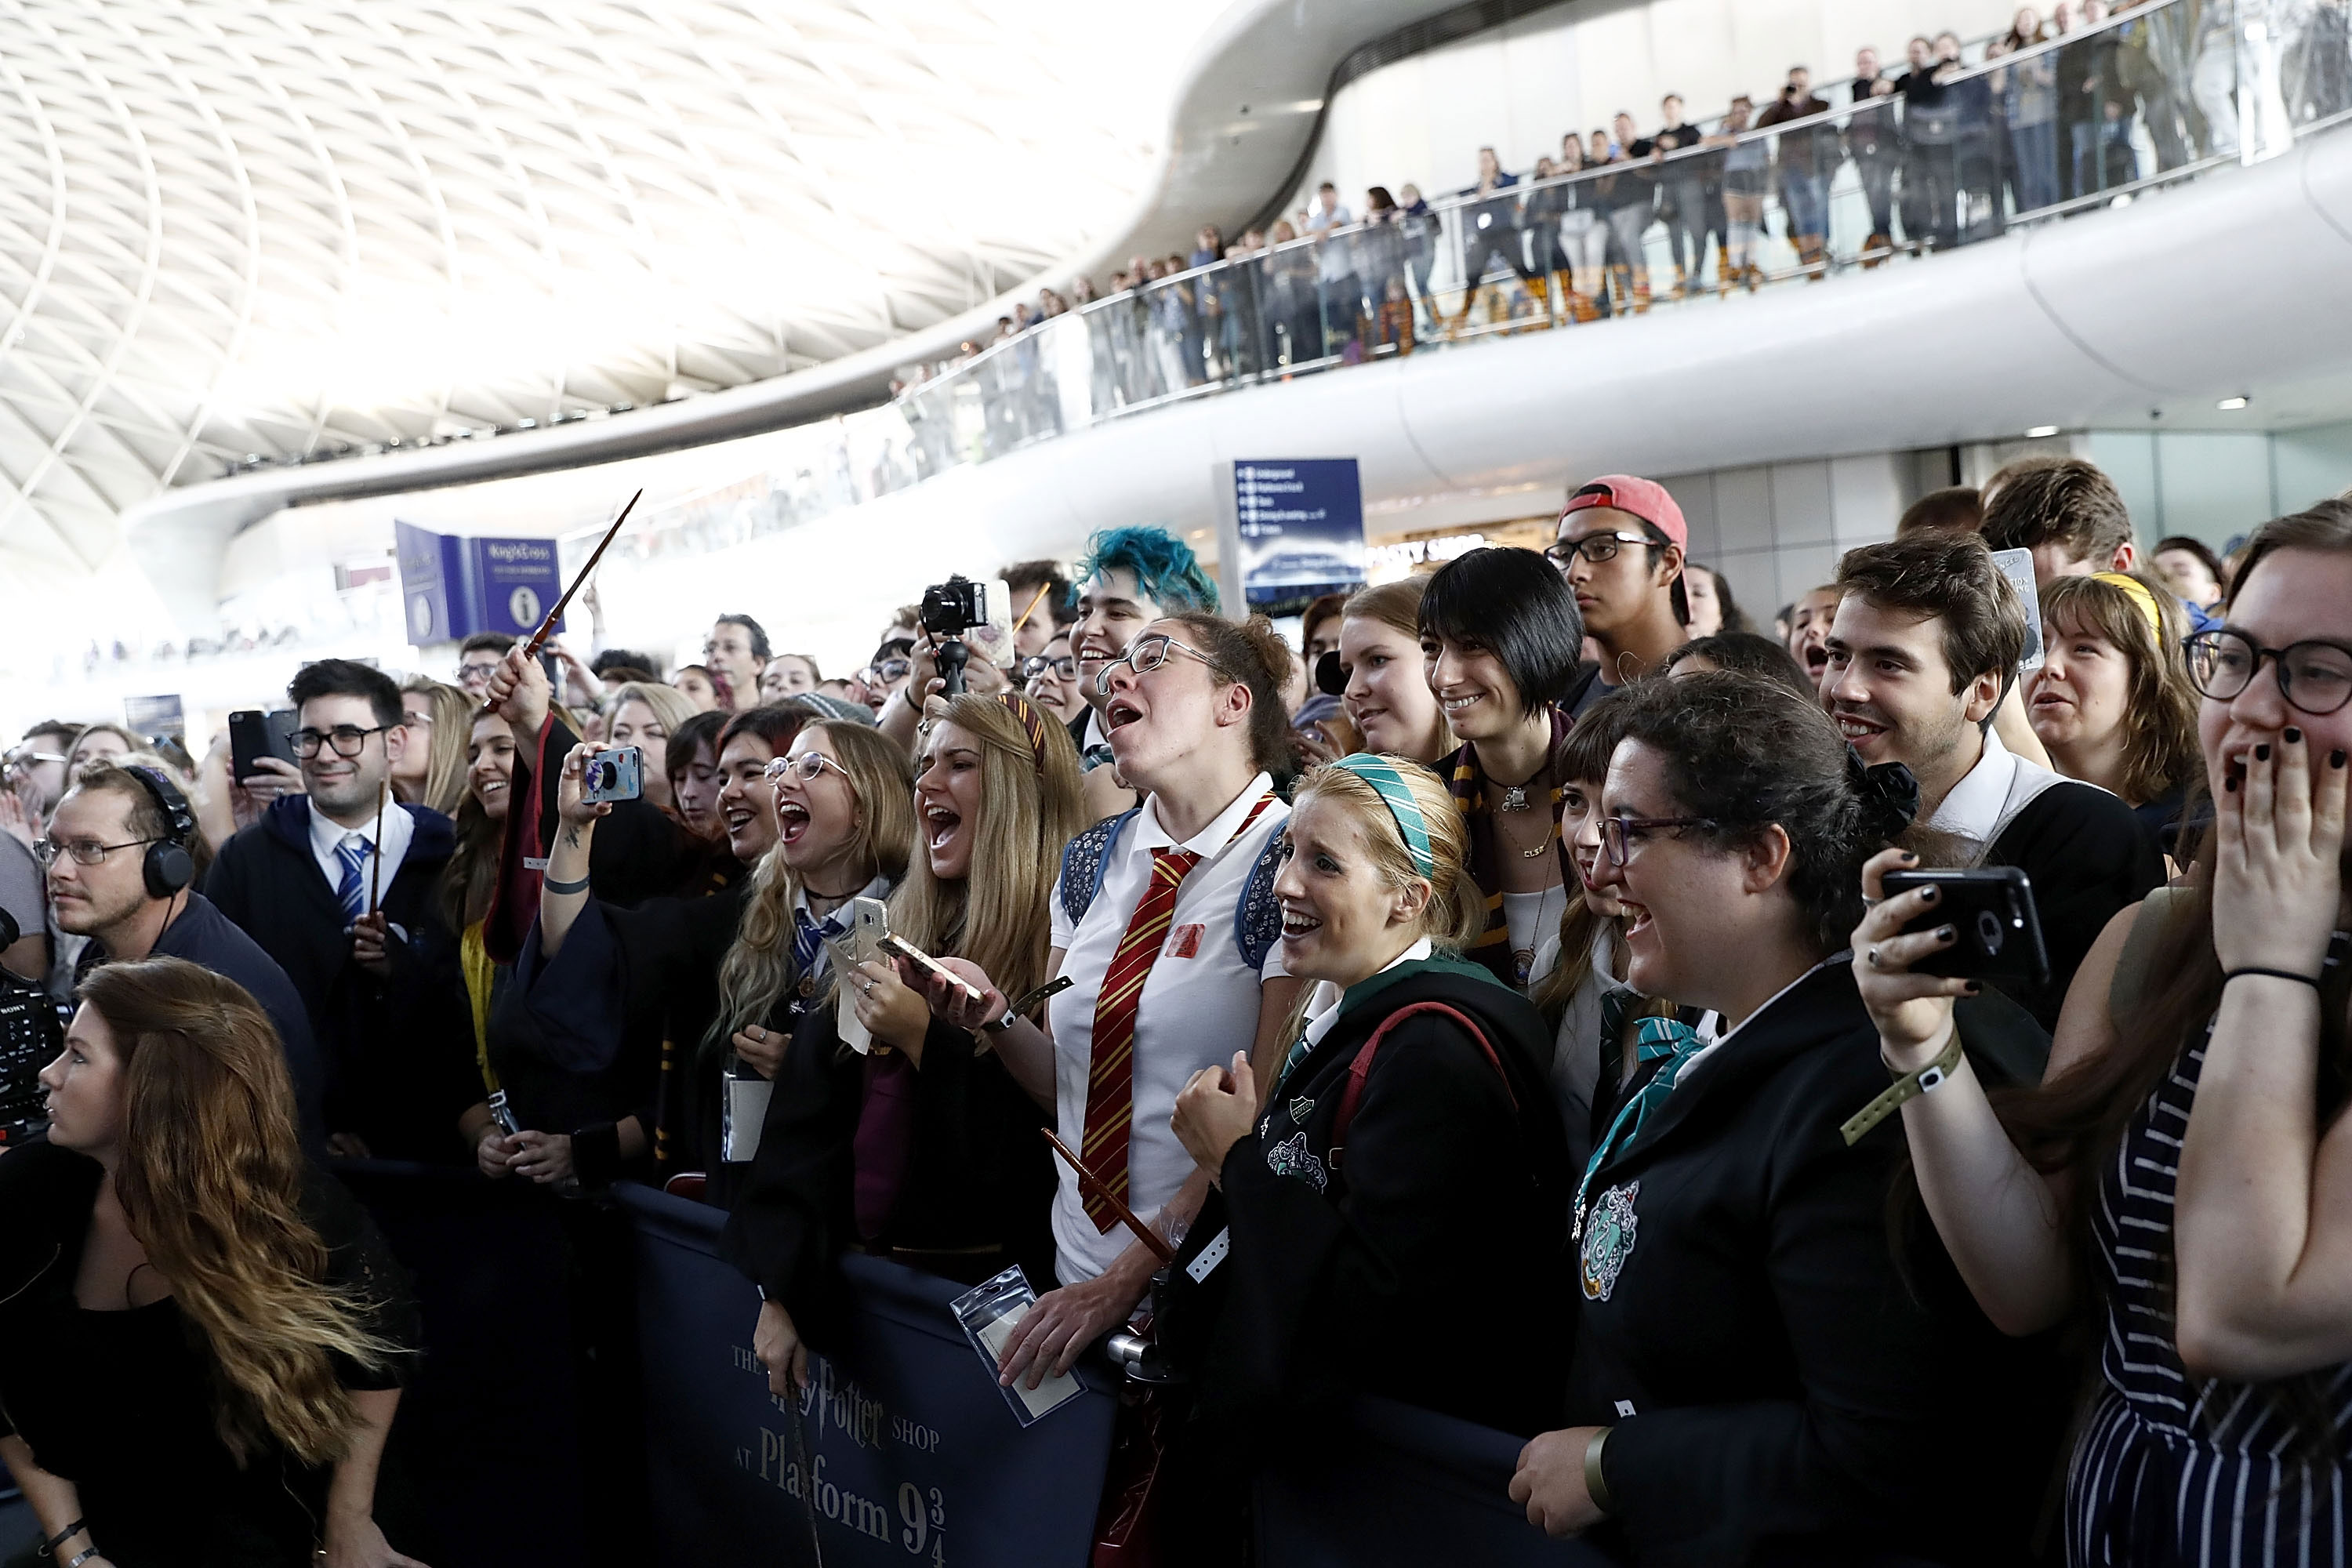 Fans are taken by surprise at the appearance of Law and Redmayne at Platform 9 3/4.